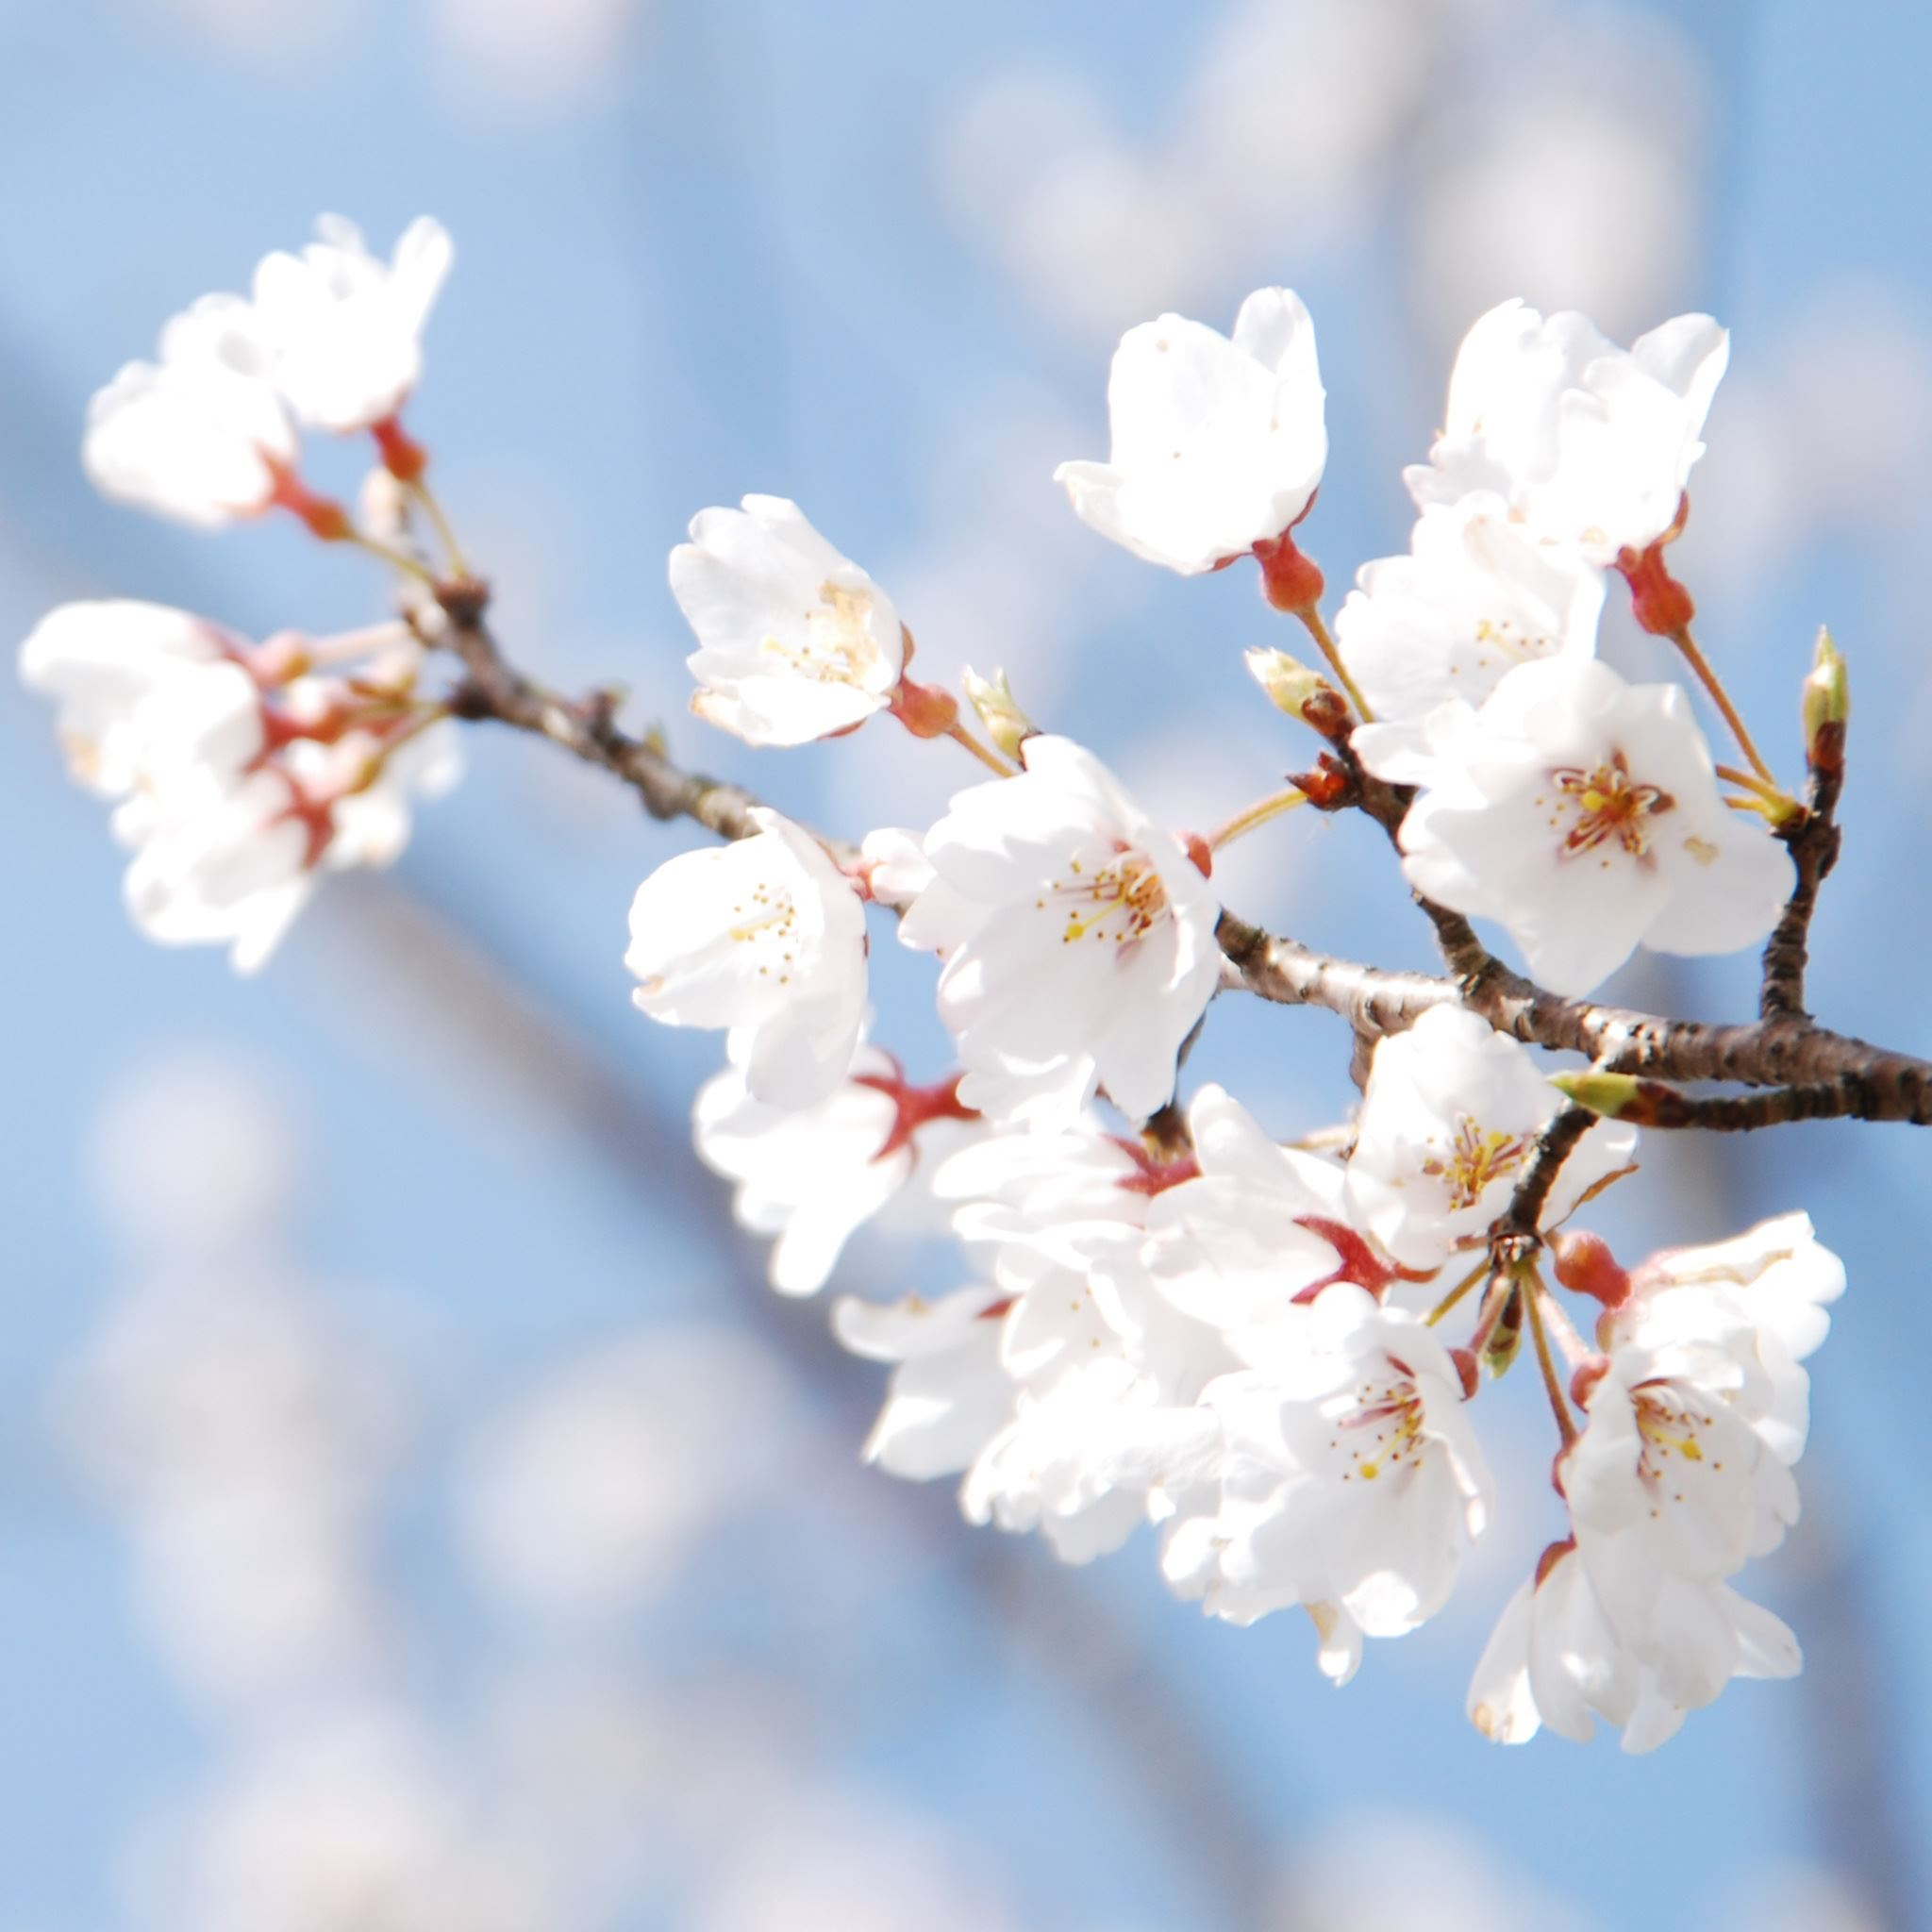 Cherry Blossom And Blue Sky iPad Air wallpaper